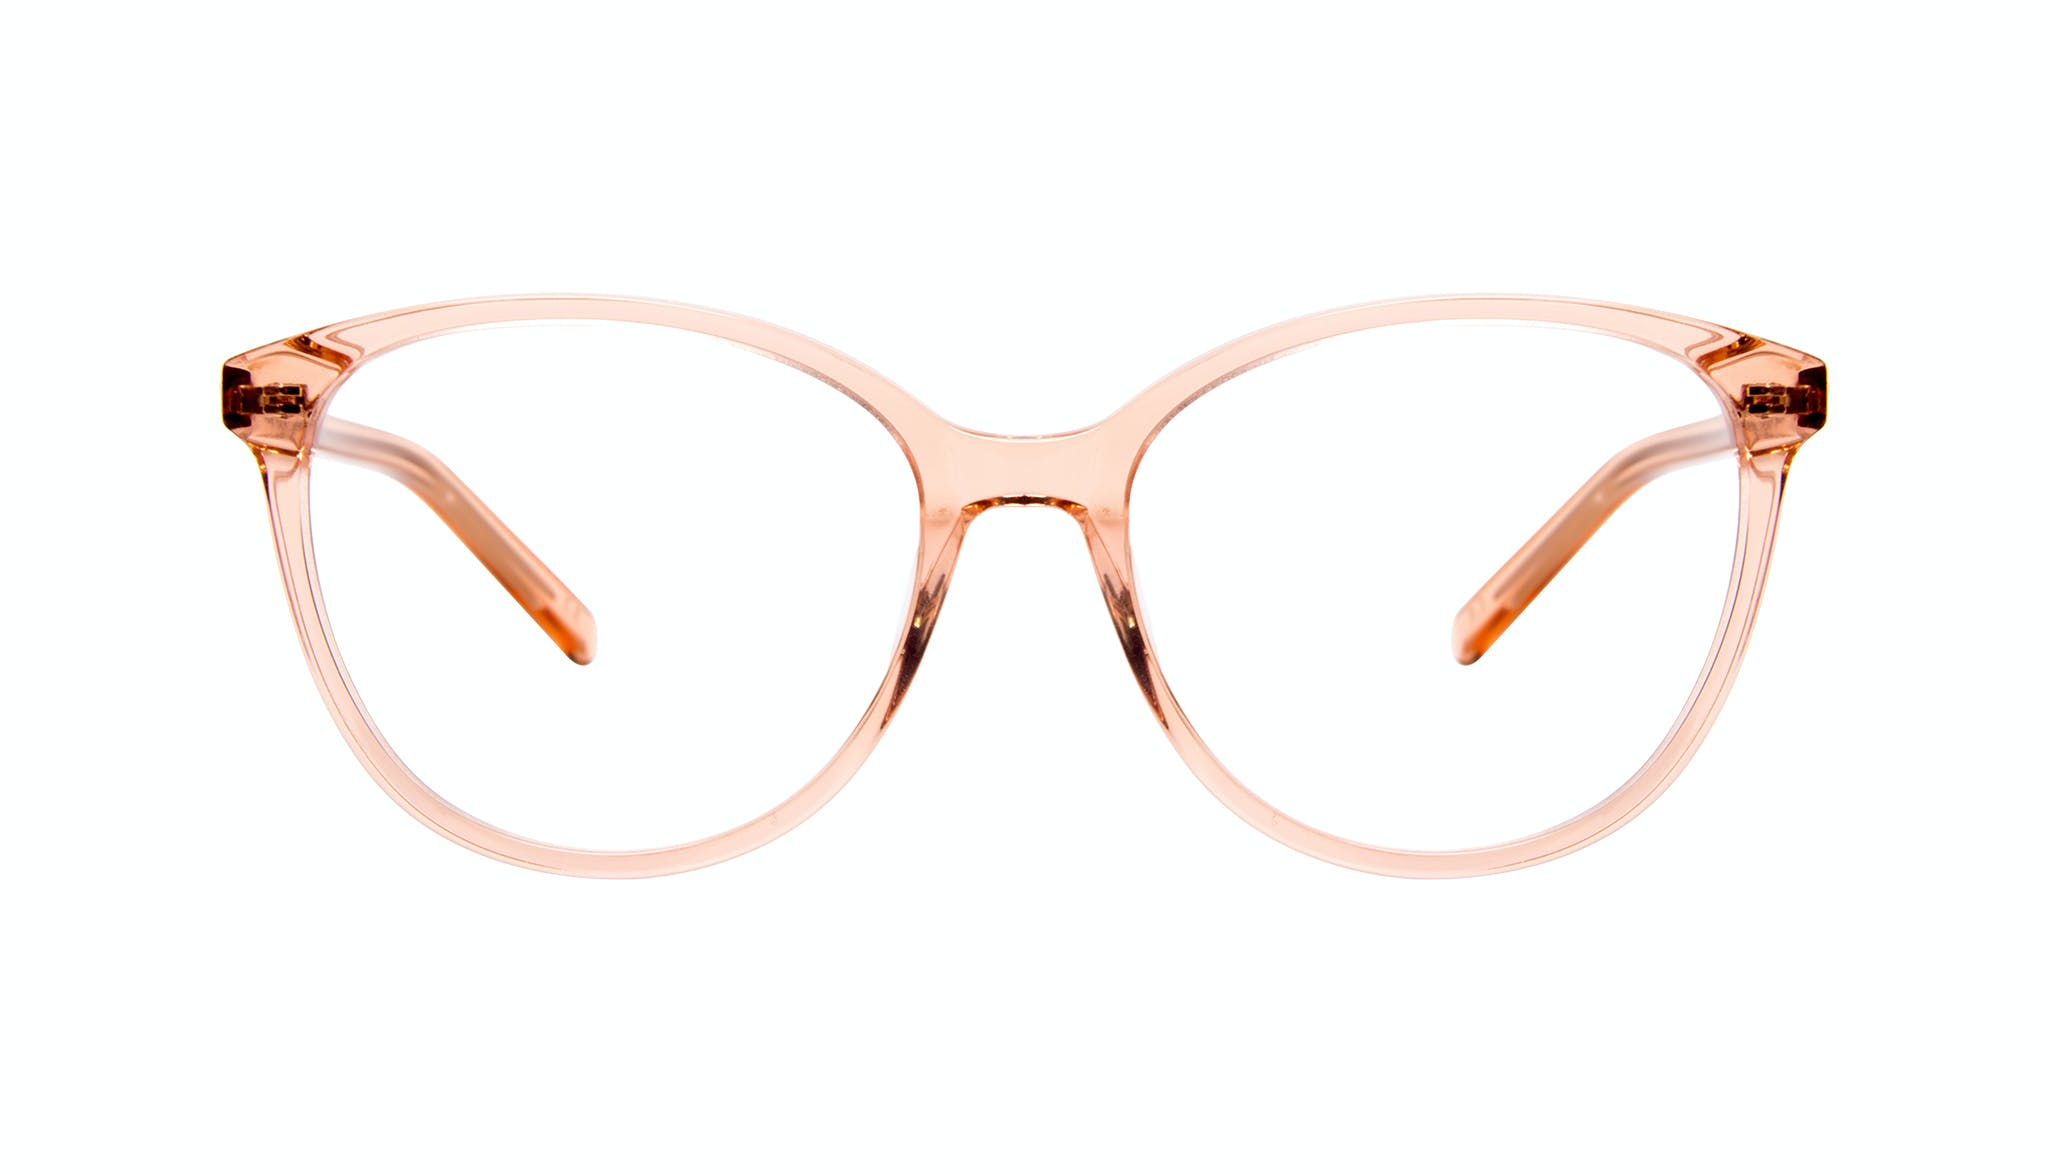 Affordable Fashion Glasses Cat Eye Round Eyeglasses Women Imagine Peach Front